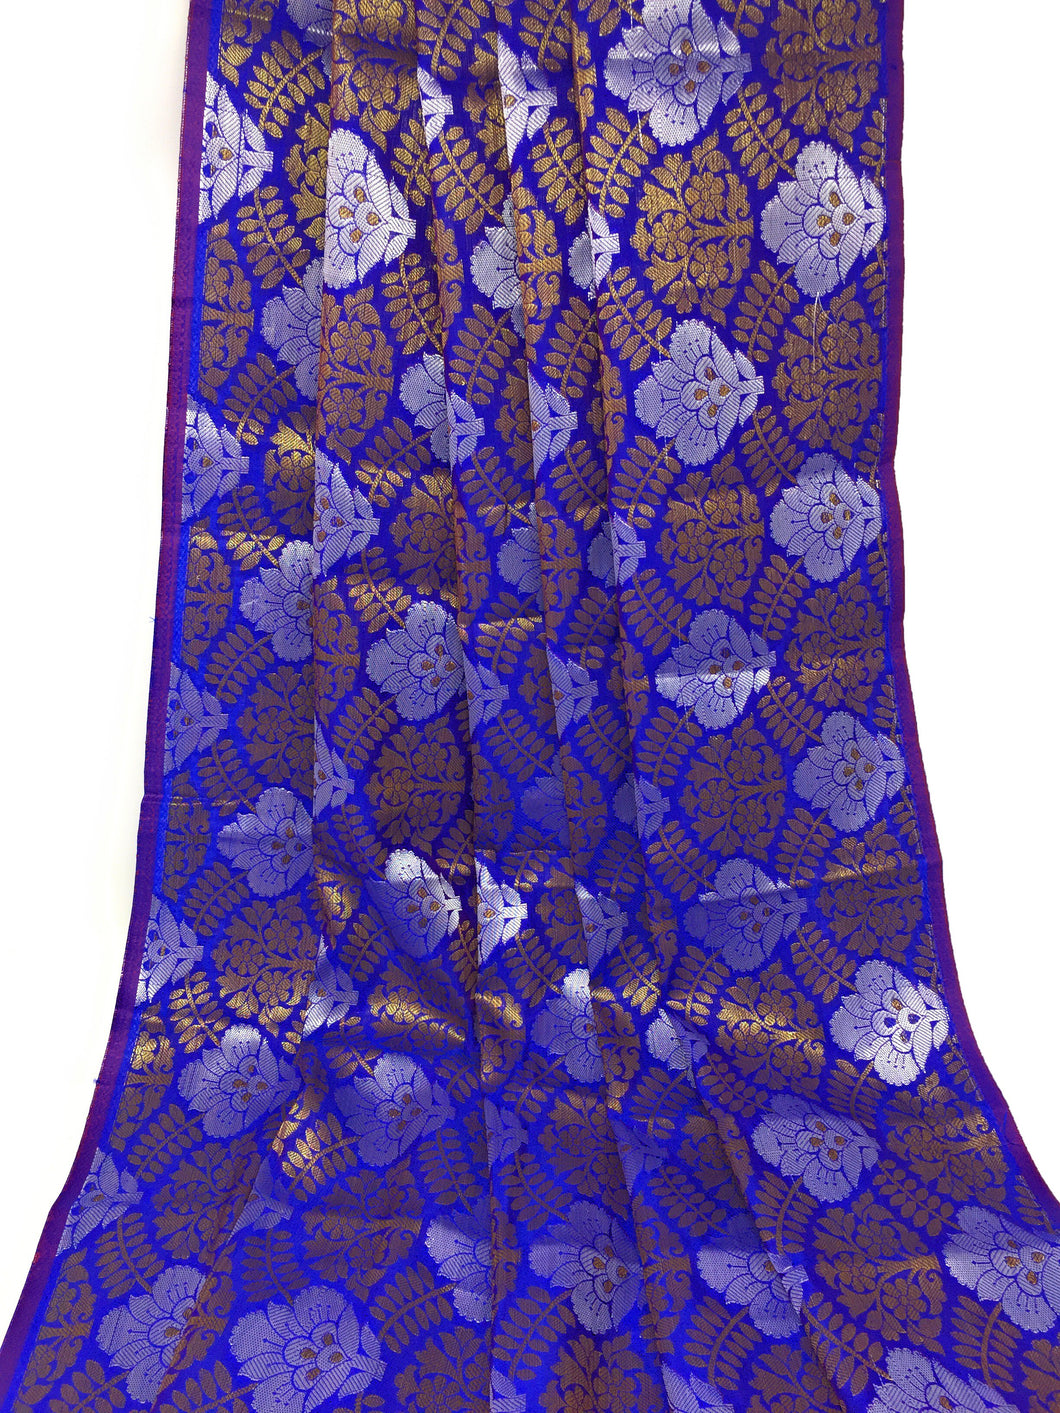 Blue Brocade Fabric, Silver Gold Jacquard Work